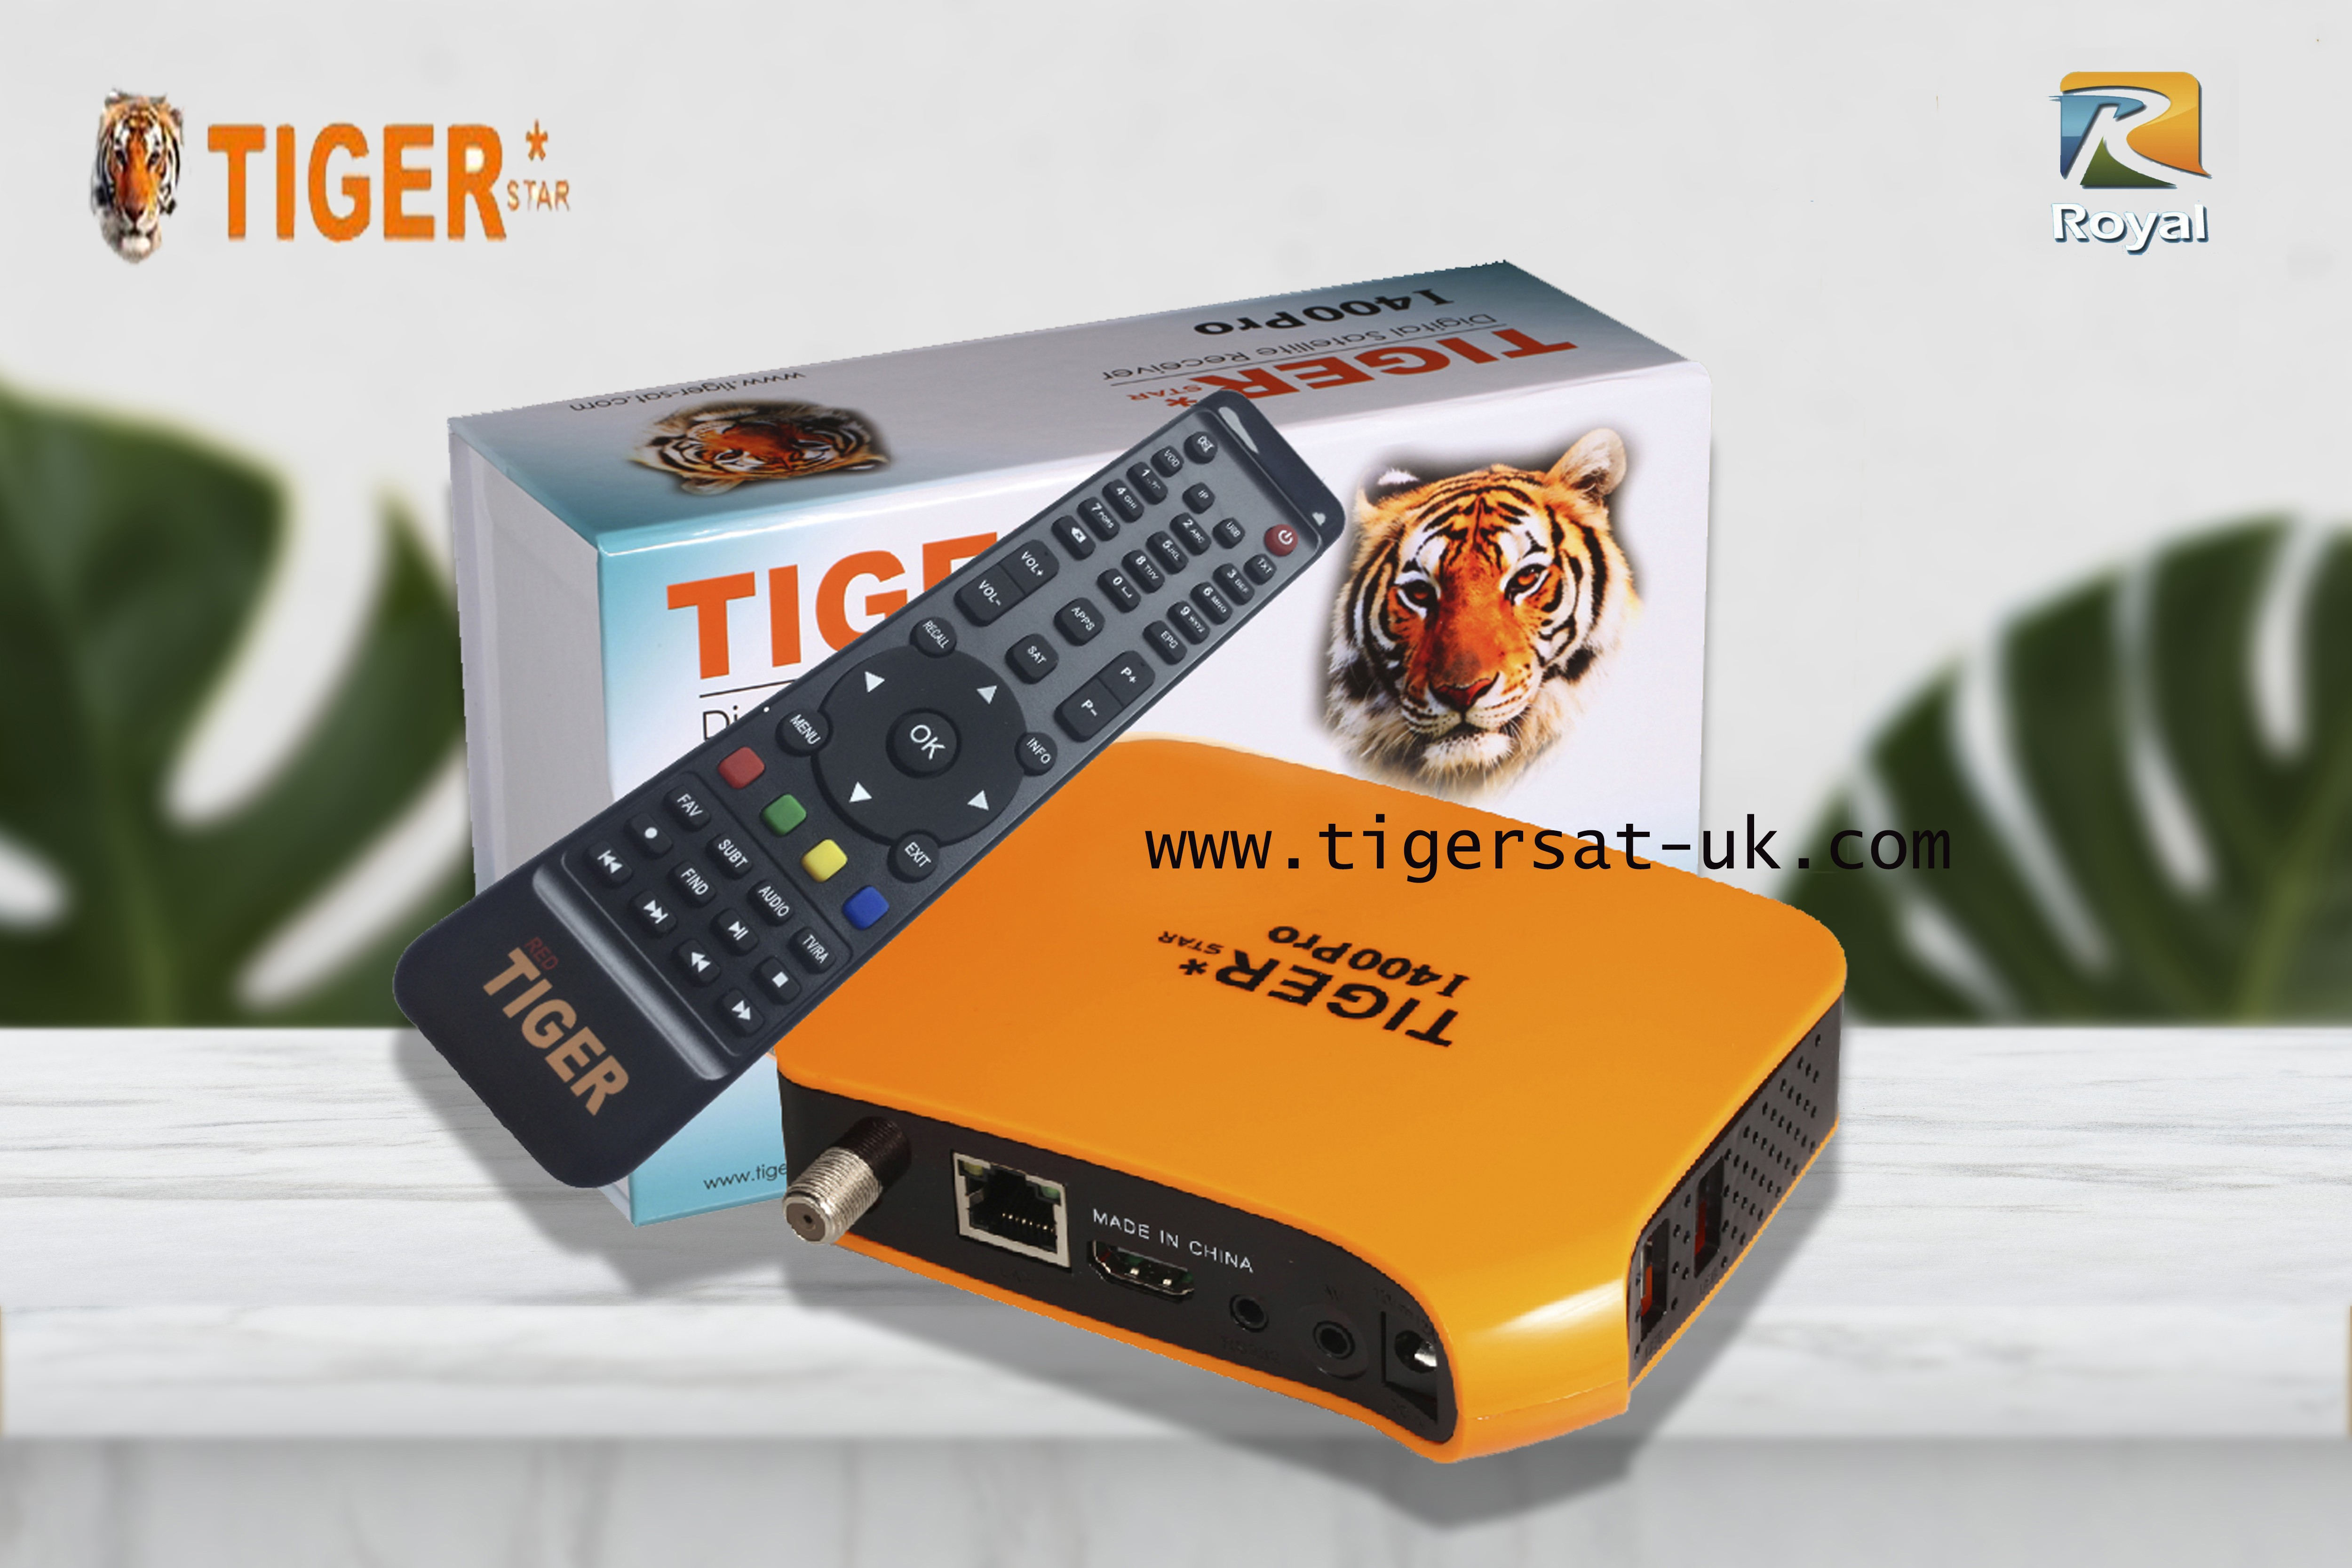 Tiger star I400 pro color Orange